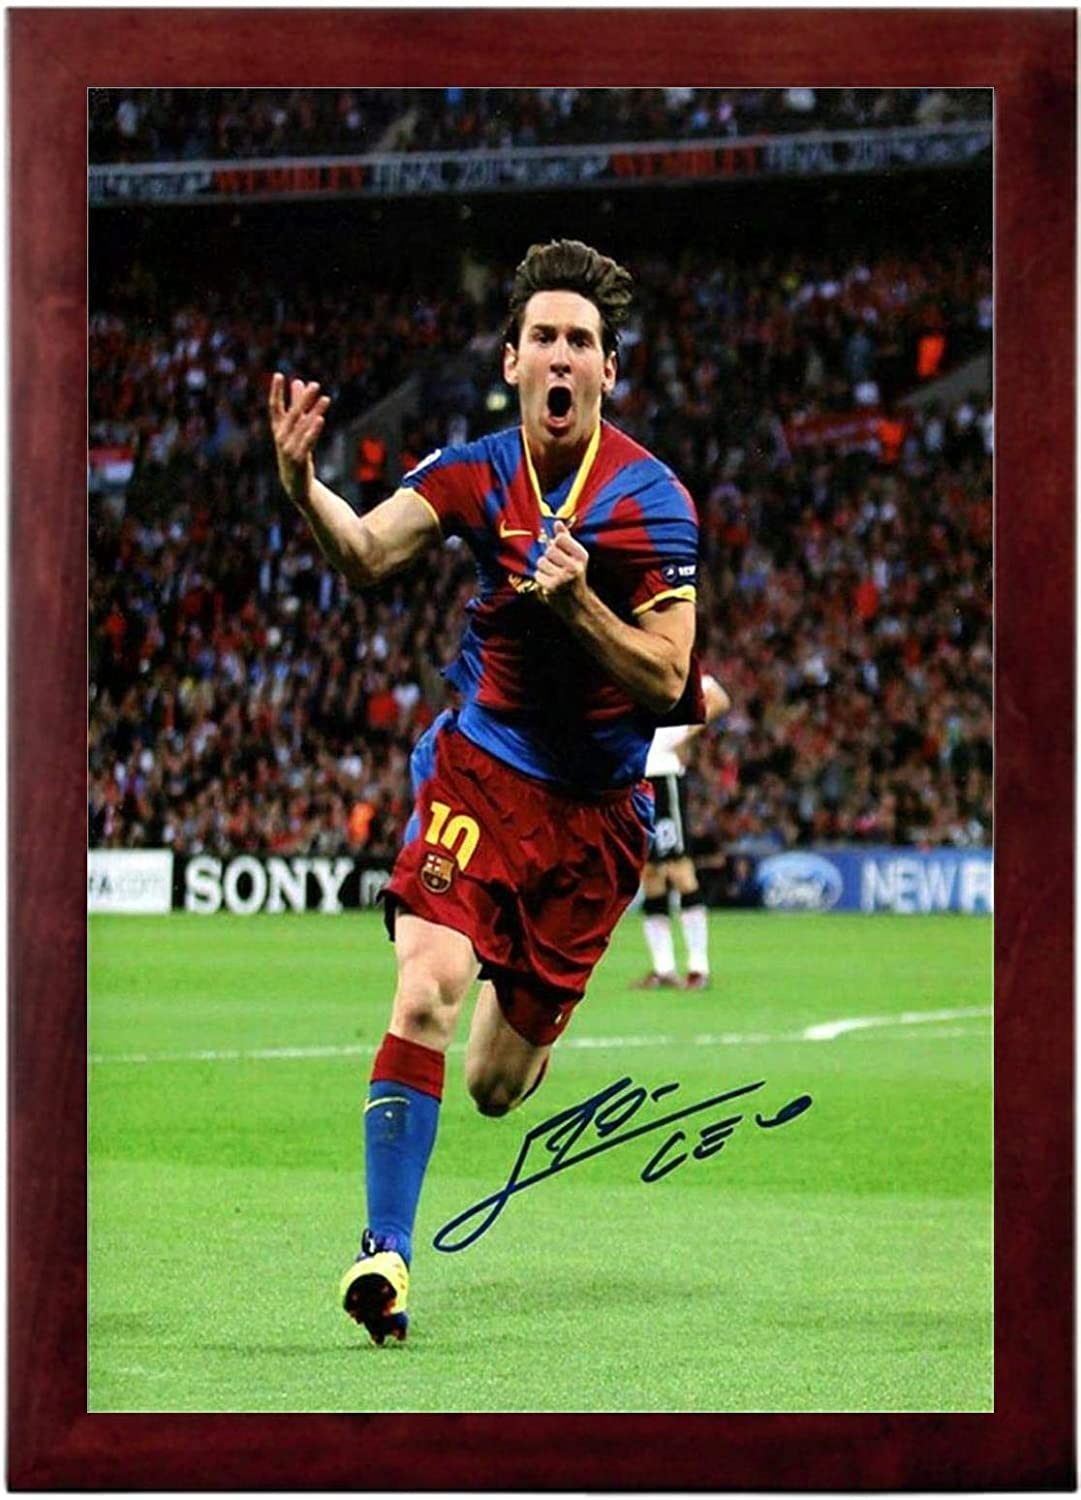 Signed 12x8 Black Soccer Lional Messi Barcelona Cristiano Ronaldo Real Madrid Autographed Photo Photograph Football Picture Frame Gift A4